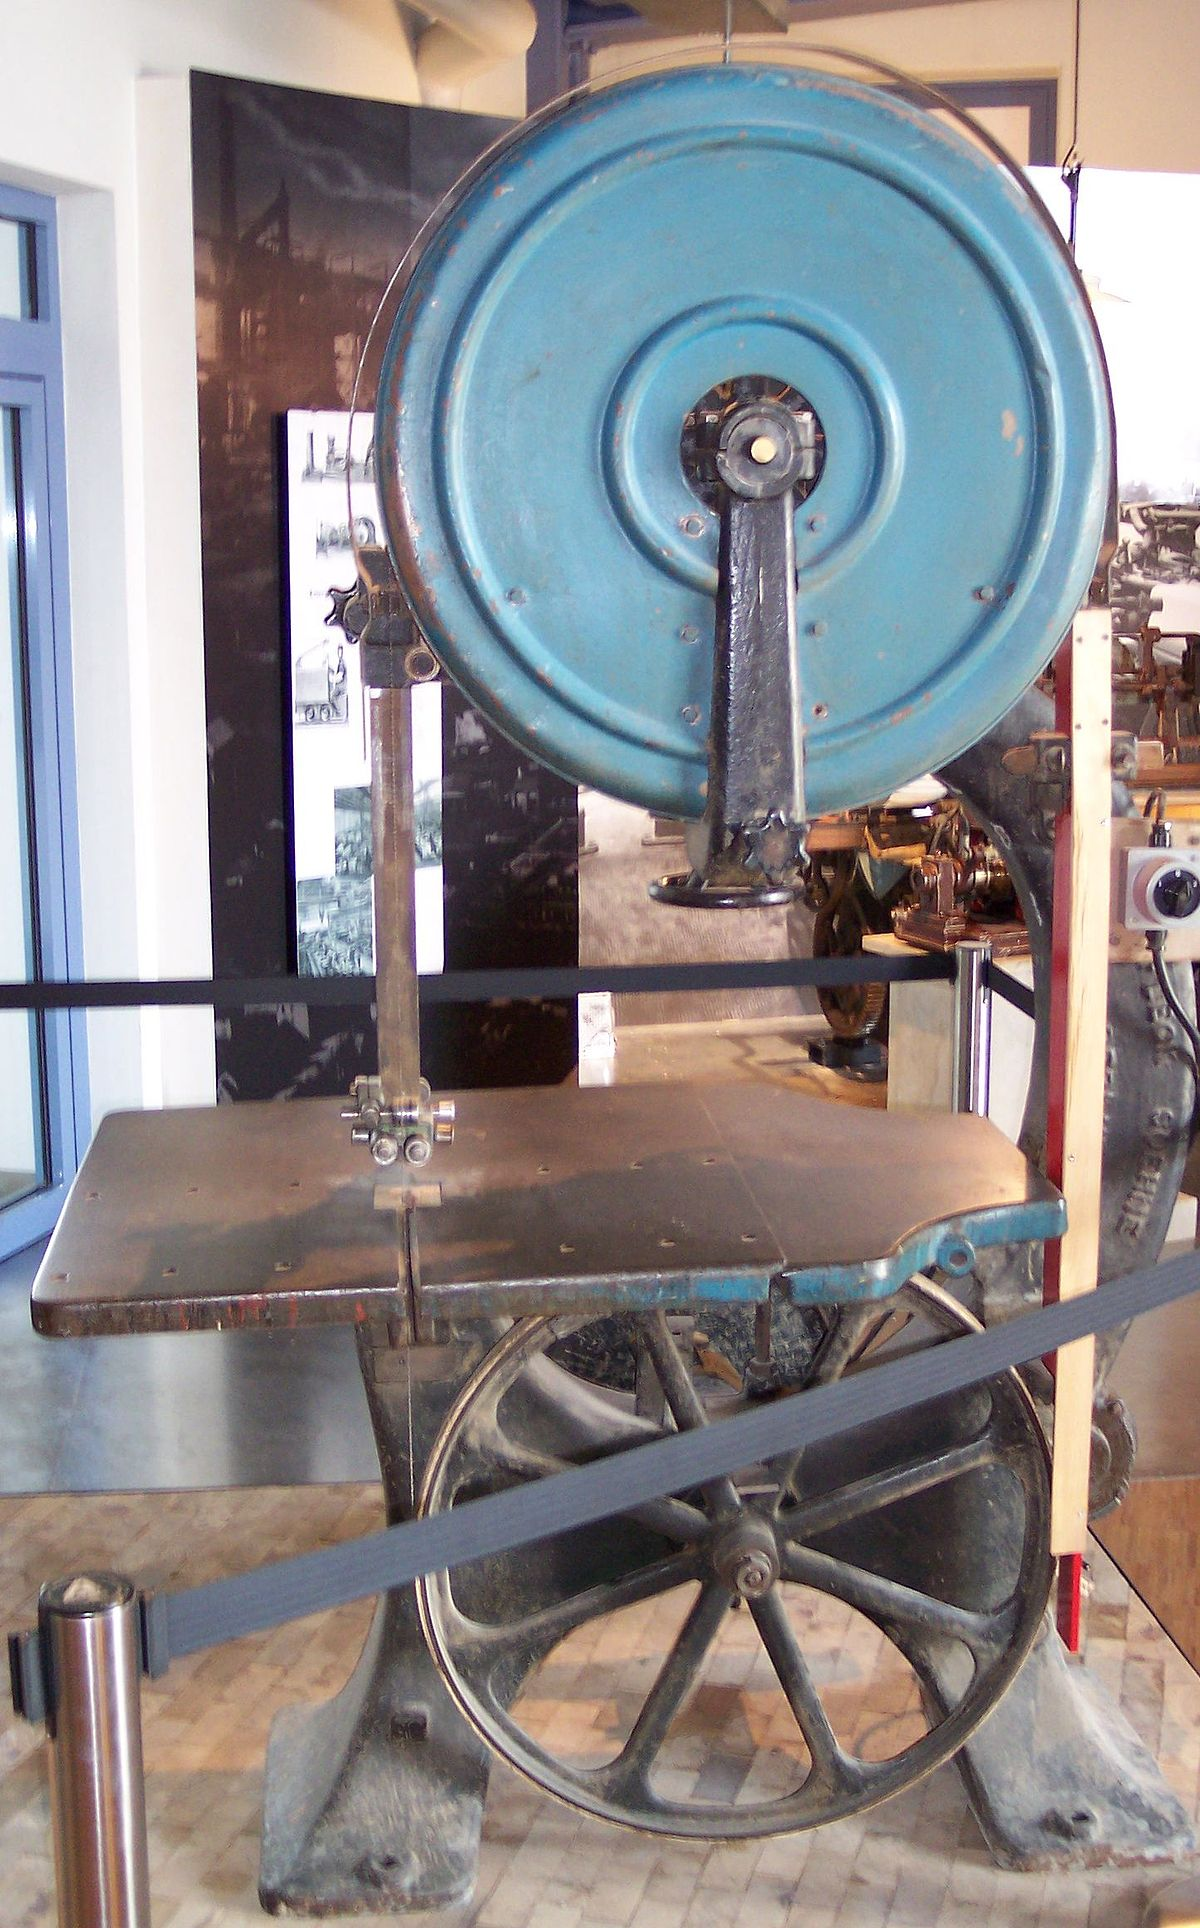 bandsaw - Wiktionary